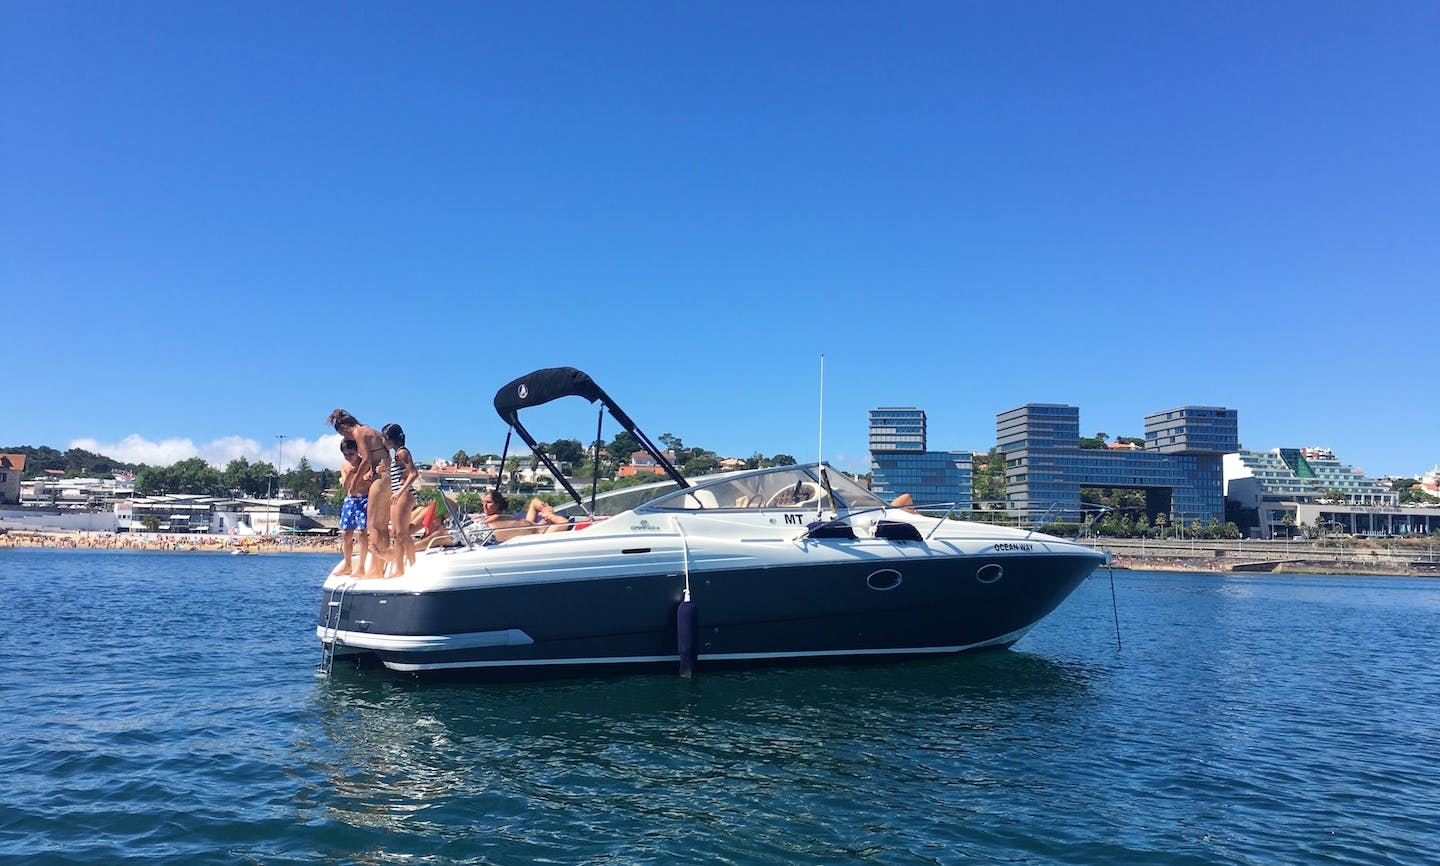 Take a voyage aboard 8 Person Motor Yacht in Lisboa, Portugal